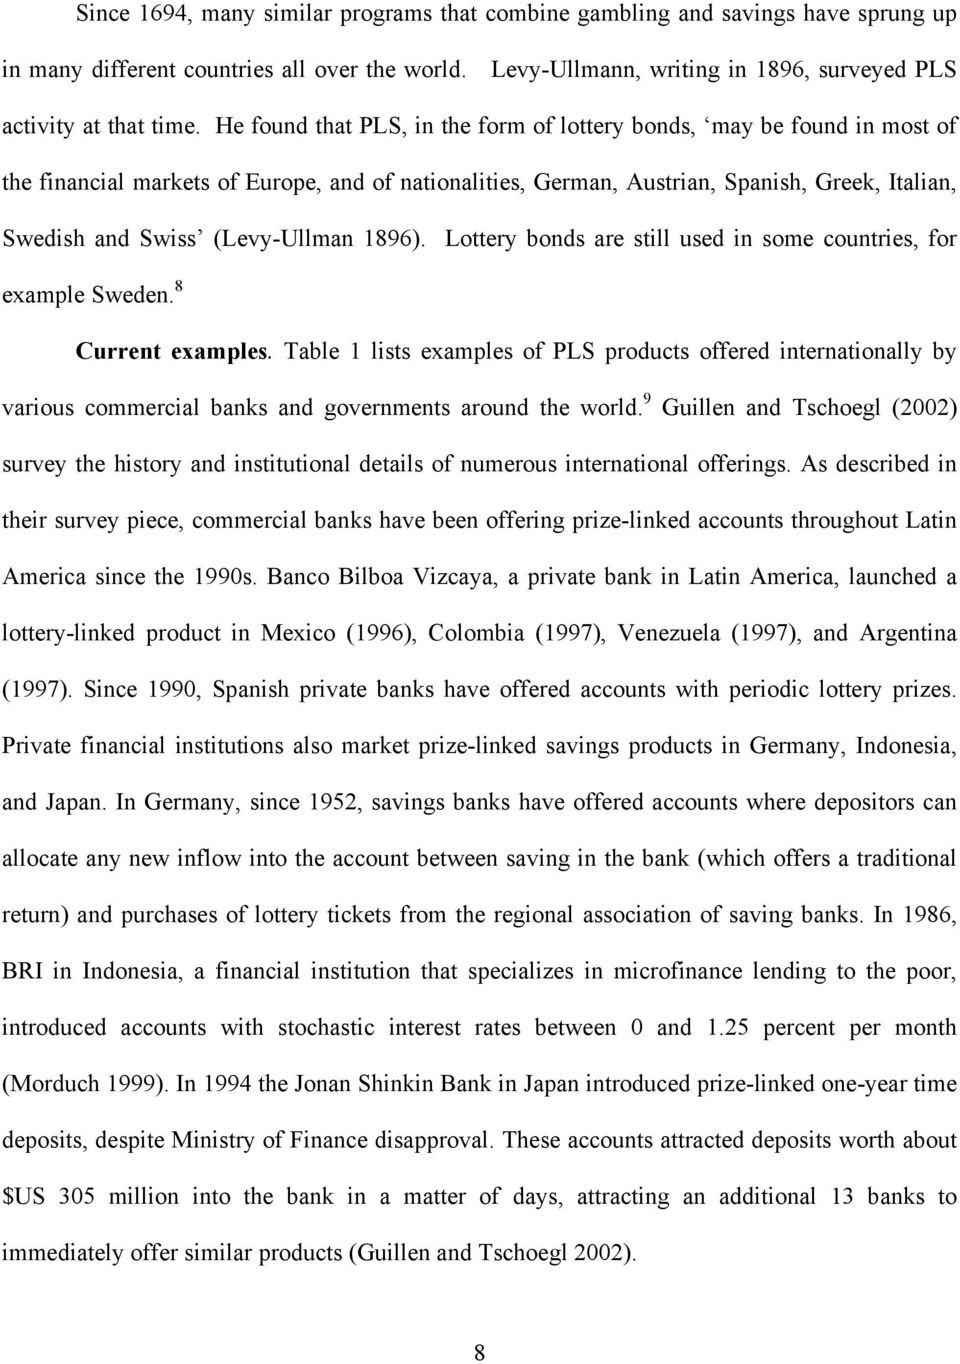 (Levy-Ullman 1896). Lottery bonds are still used in some countries, for example Sweden. 8 Current examples.